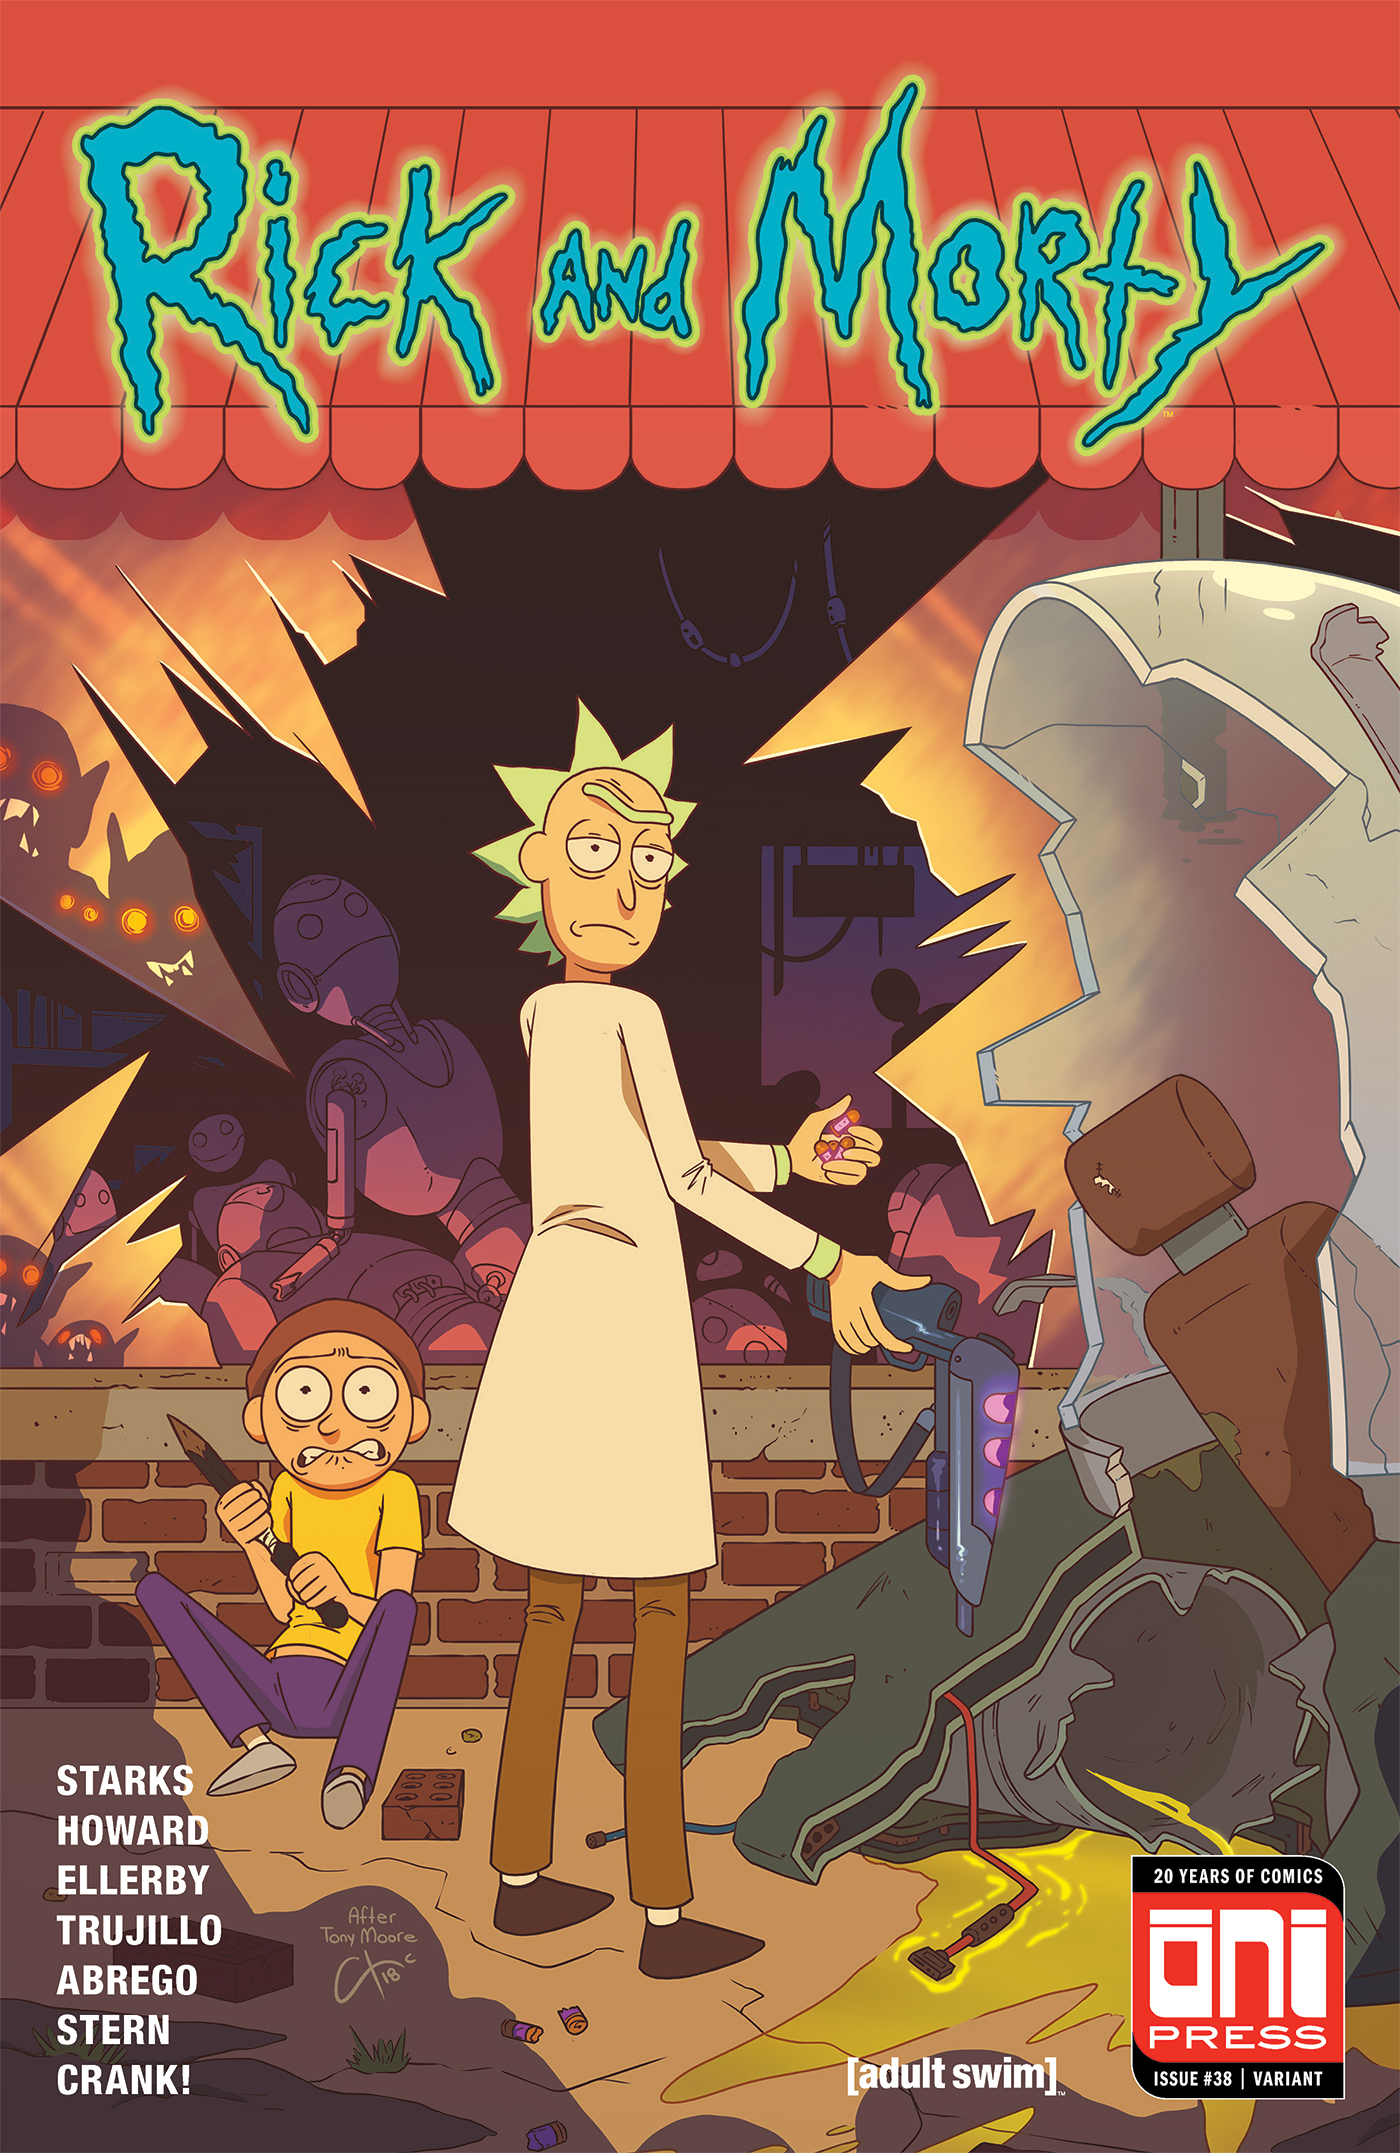 Rick and Morty Issue 38